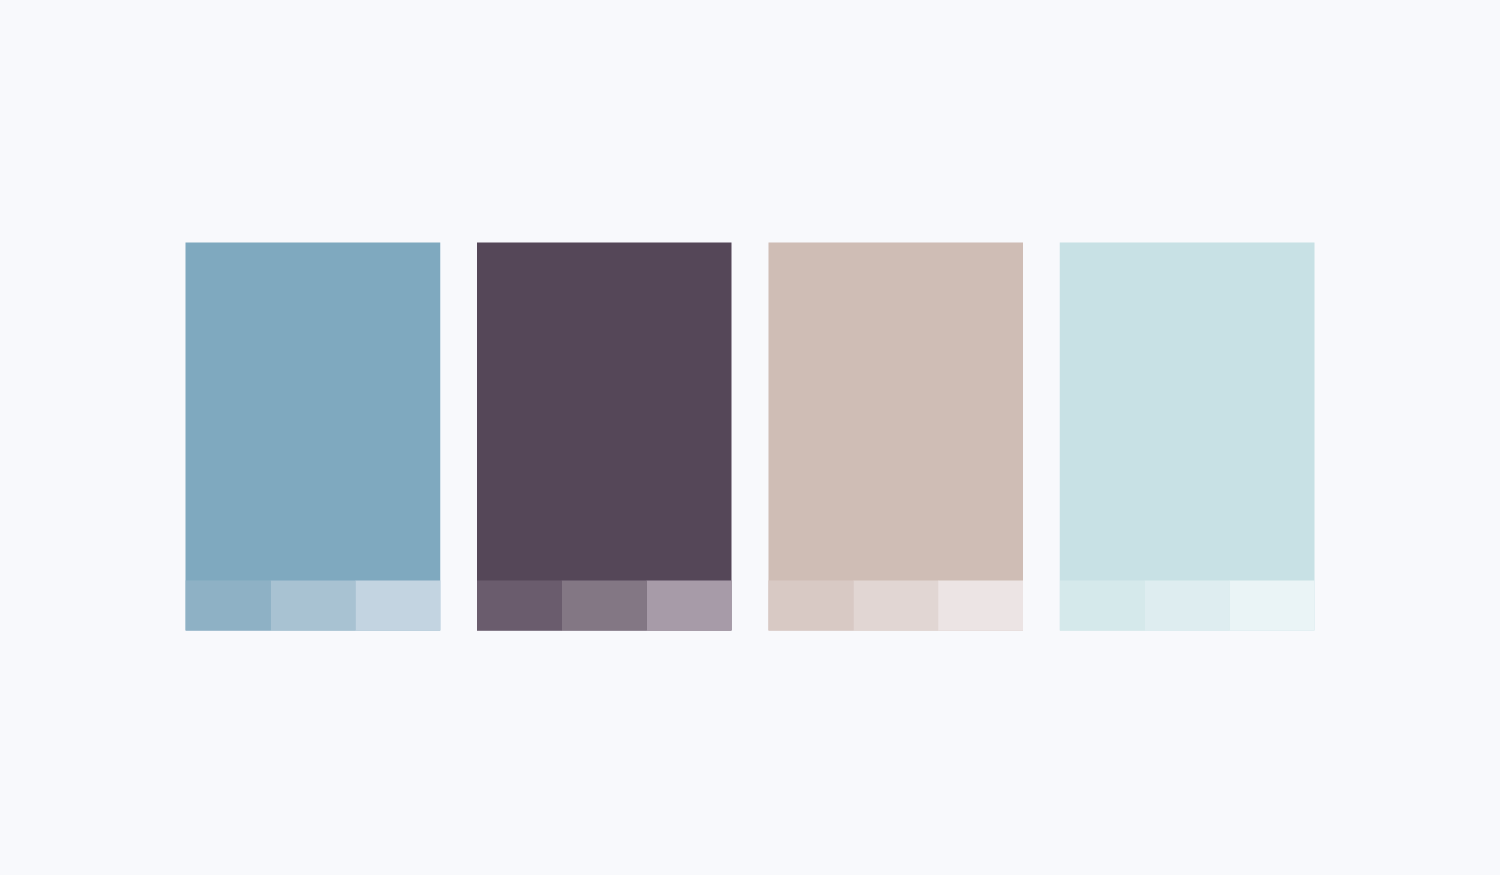 Pacific at Home visual identity color palette